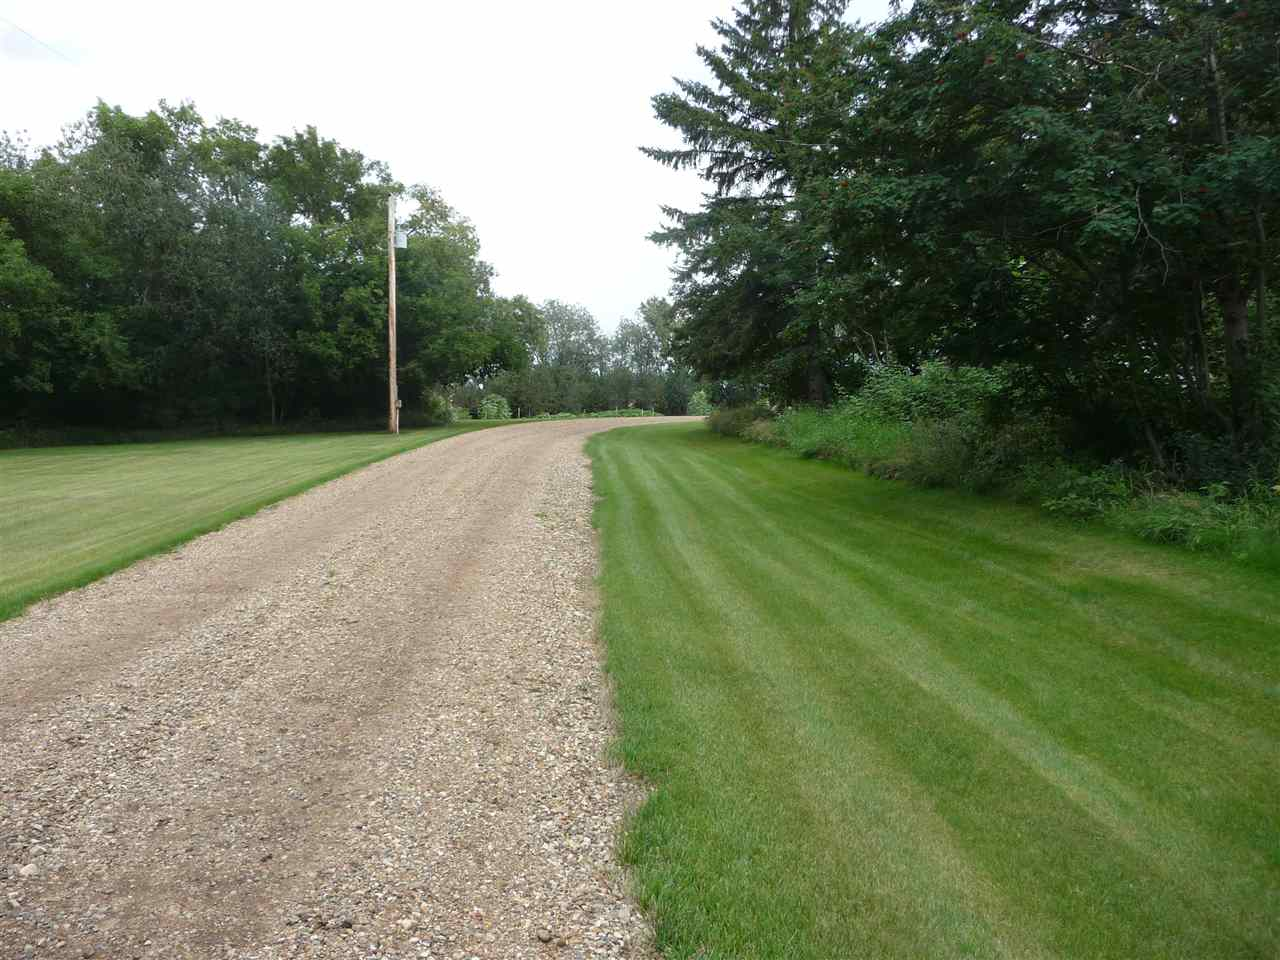 Photo 20: 54527 RGE RD 243: Rural Sturgeon County House for sale : MLS(r) # E4033494